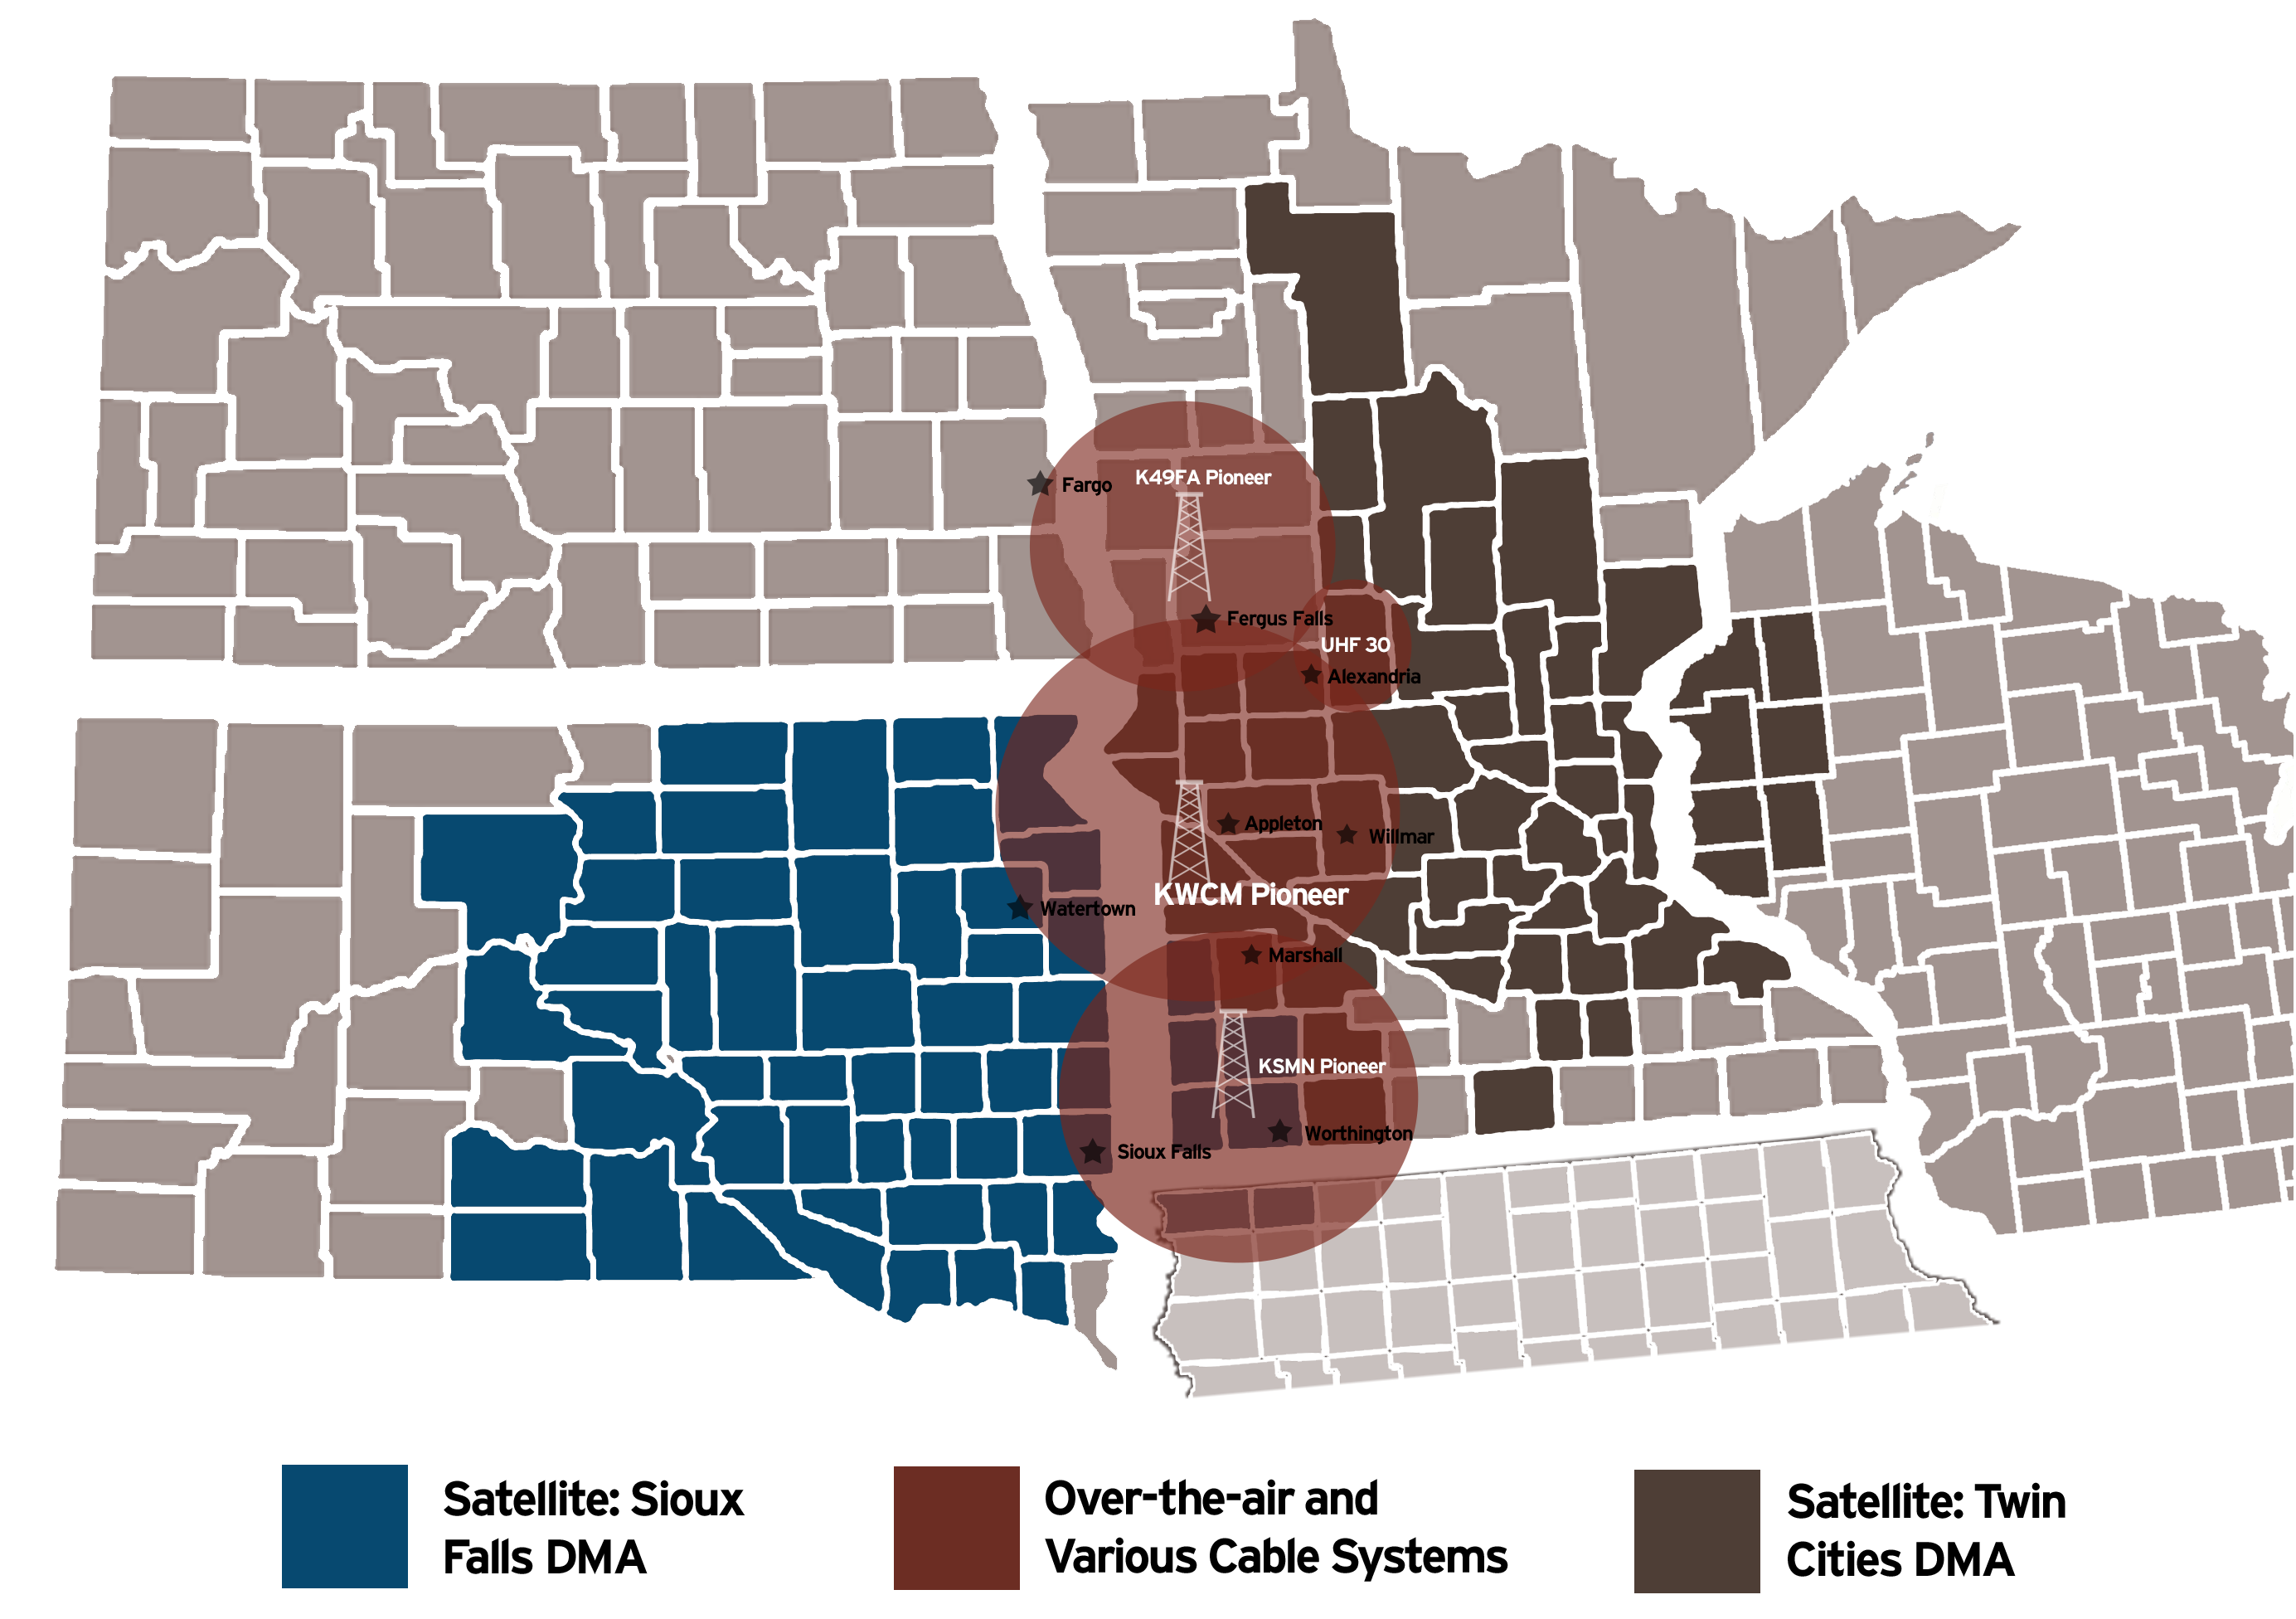 Pioneer's coverage map